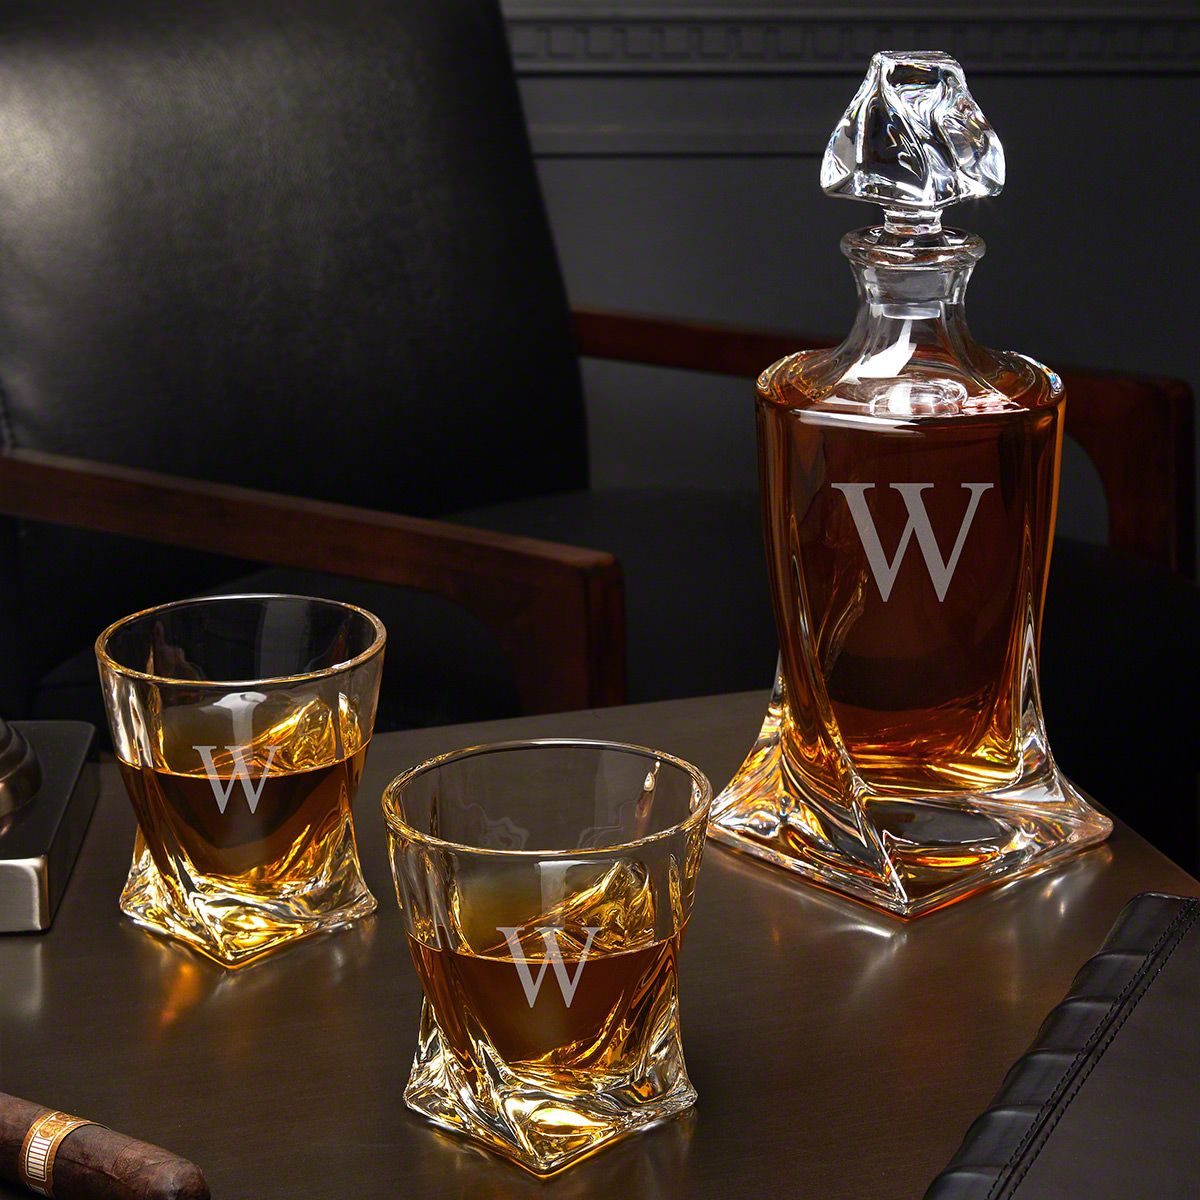 Personalized Twist Decanter and Twist Glasses